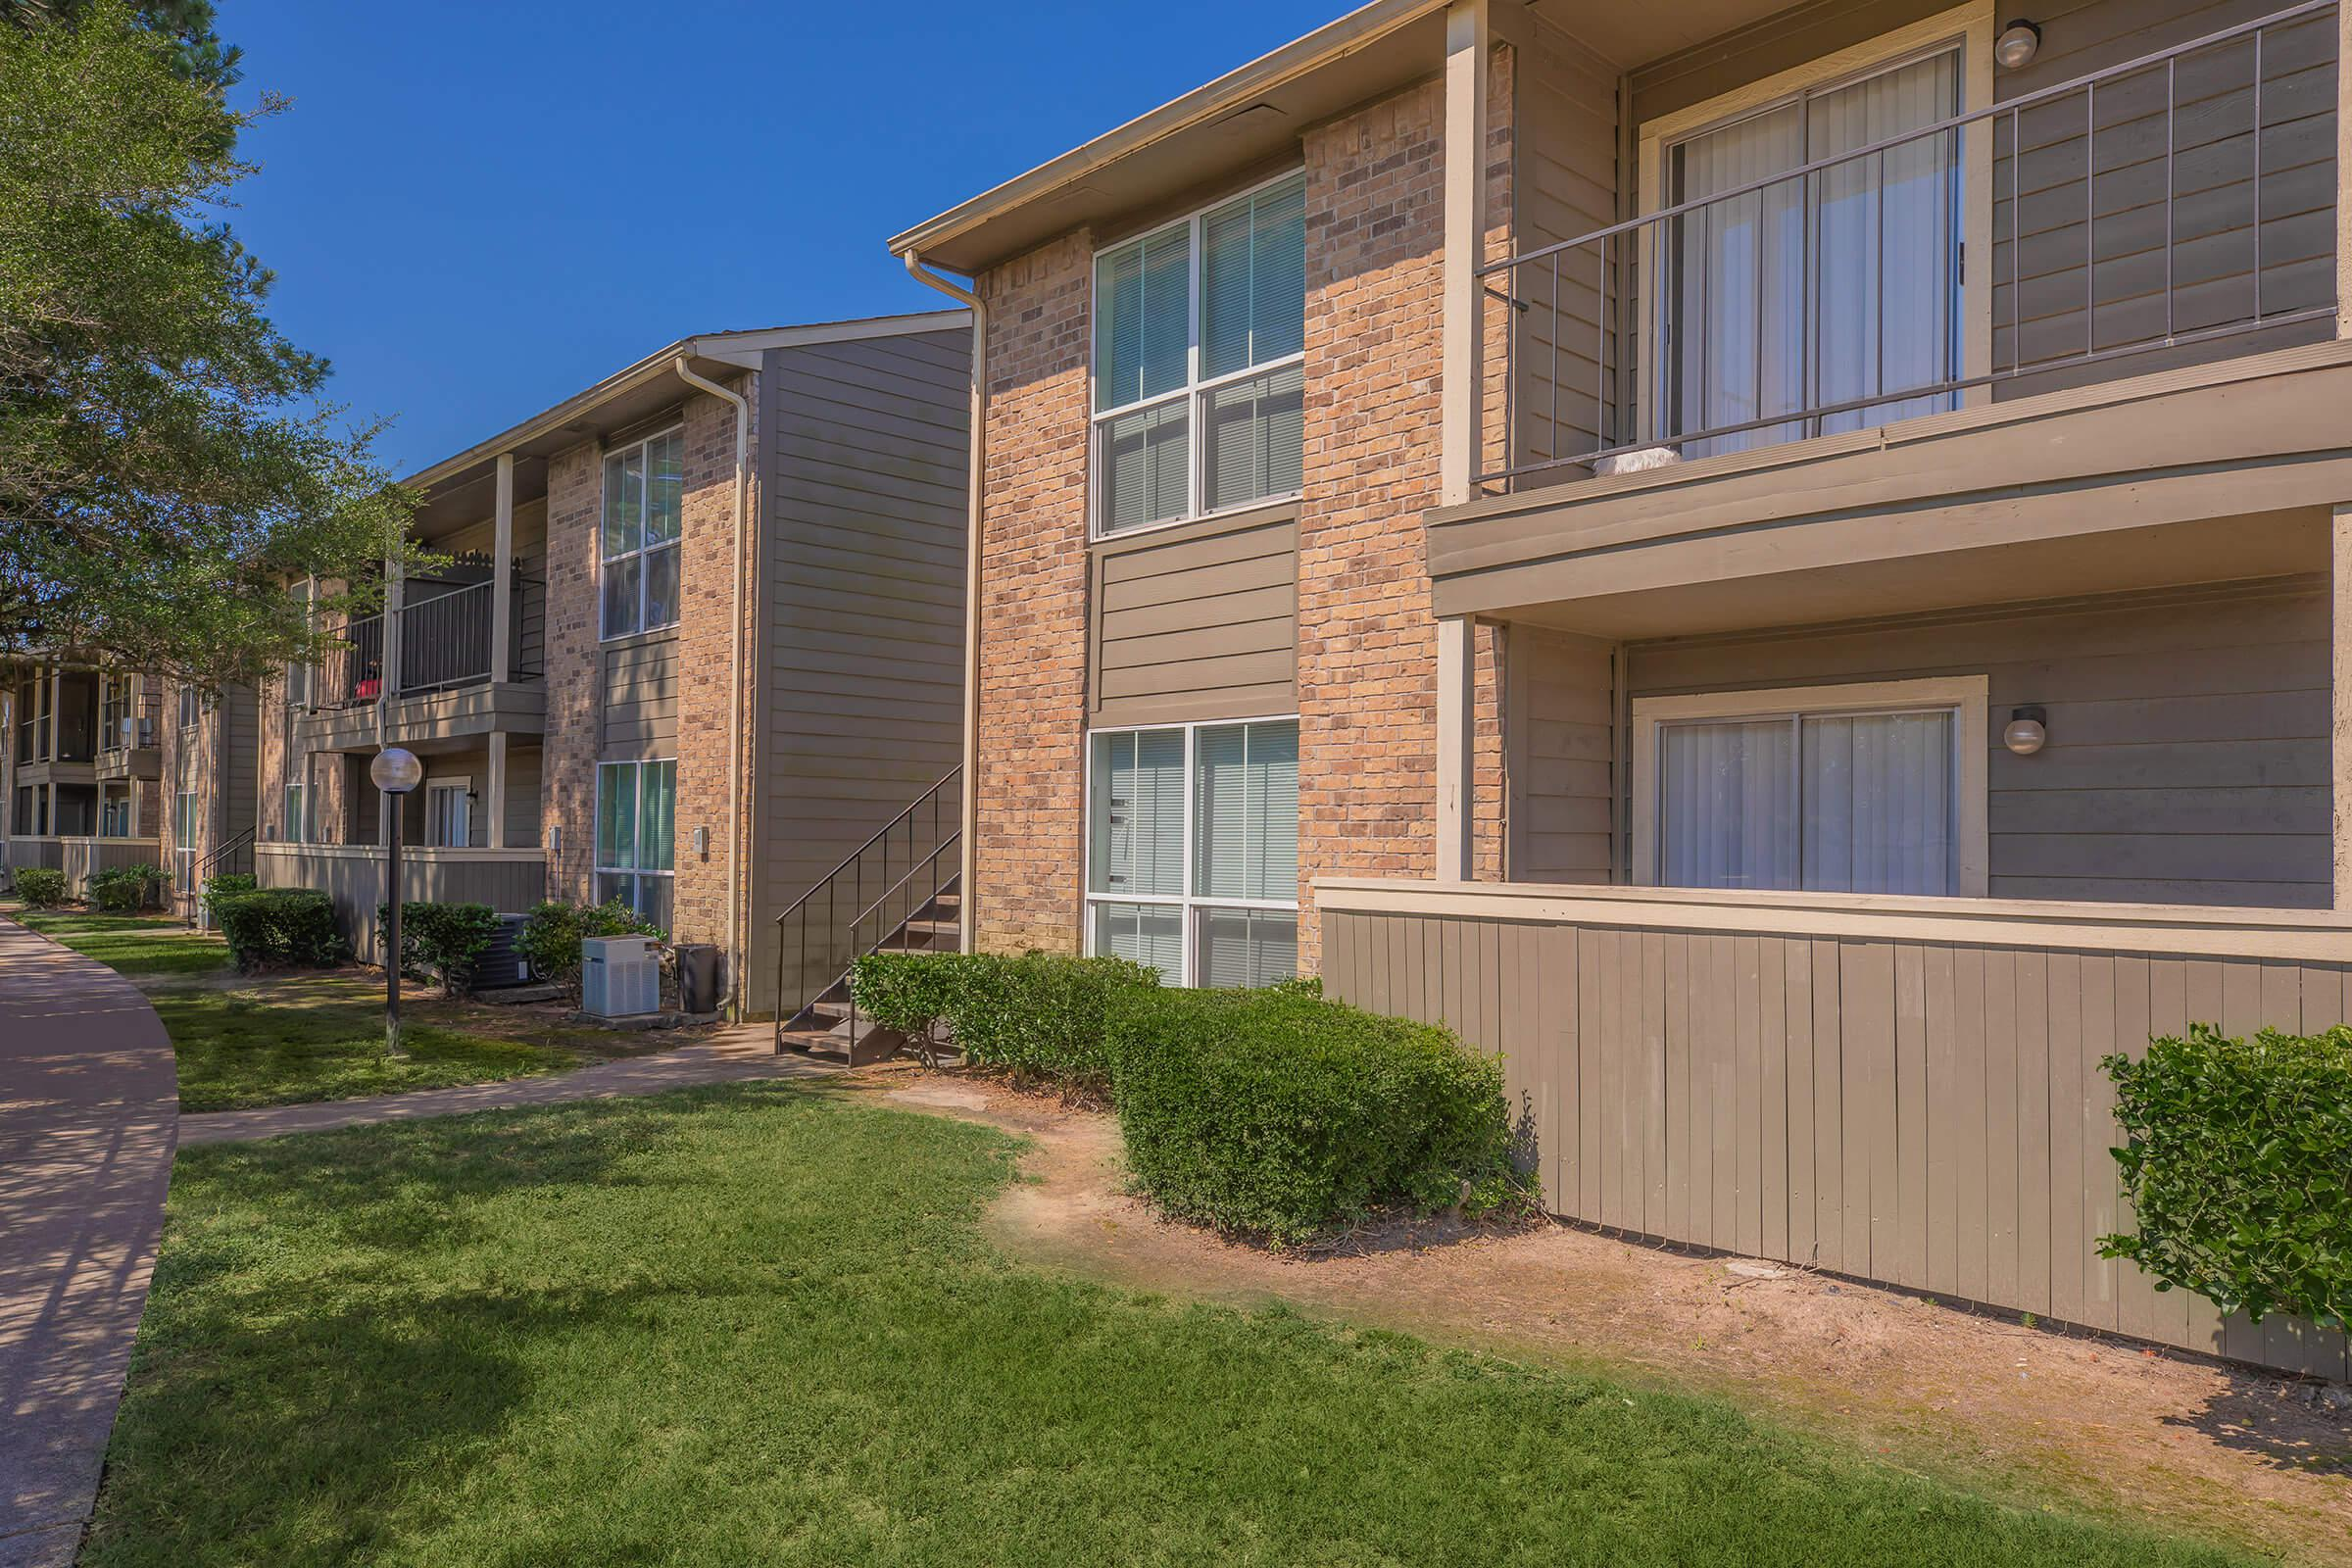 YOUR NEW HOME AWAITS AT BELLA VIDA APARTMENTS IN HOUSTON, TEXAS